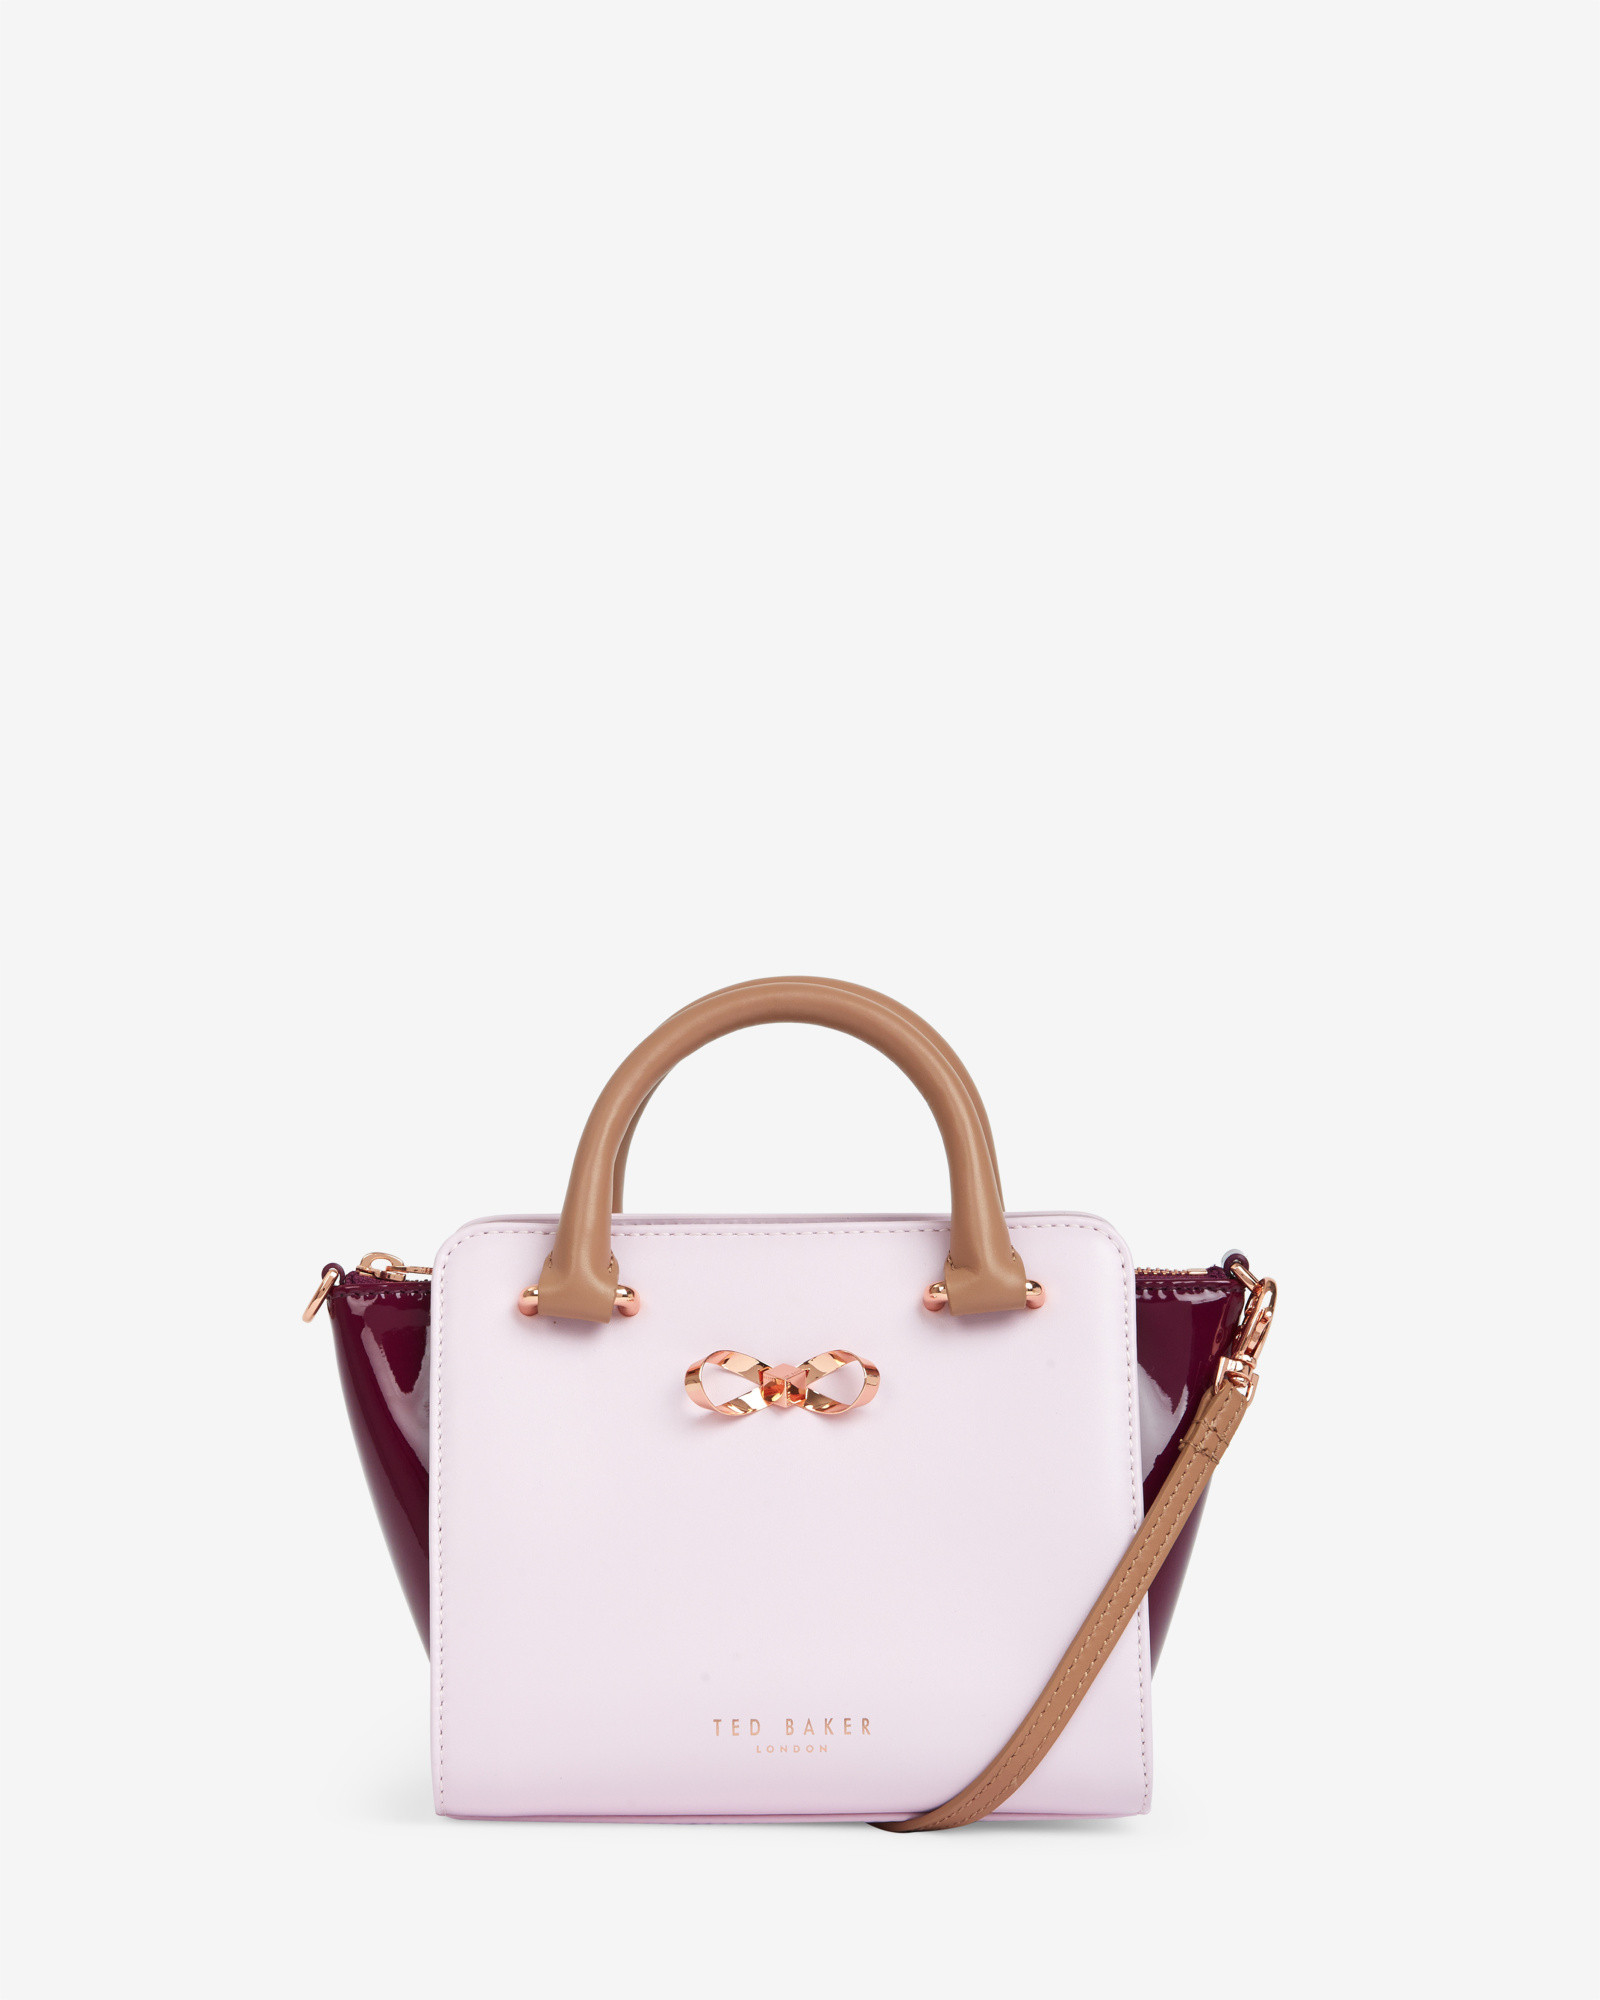 777d7277e18 Ted Baker Colour Block Leather Tote Bag in Pink - Lyst